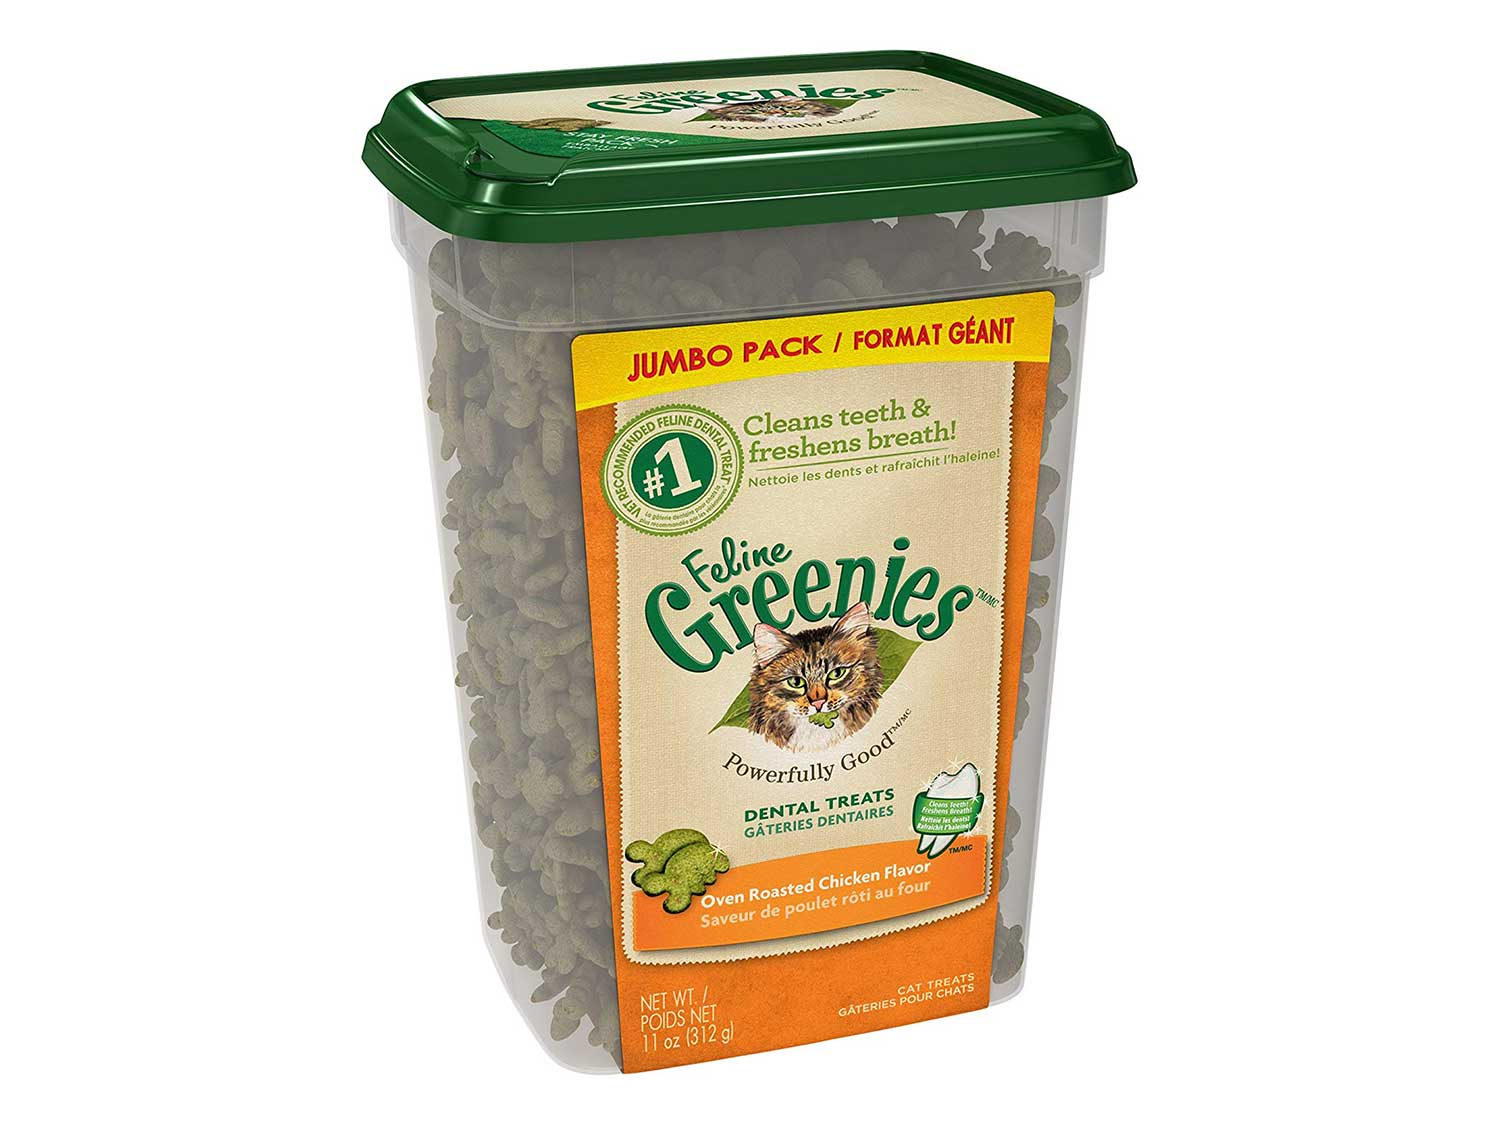 FELINE GREENIES Natural Dental Care Cat Treats, Chicken Flavor, All Bag Sizes